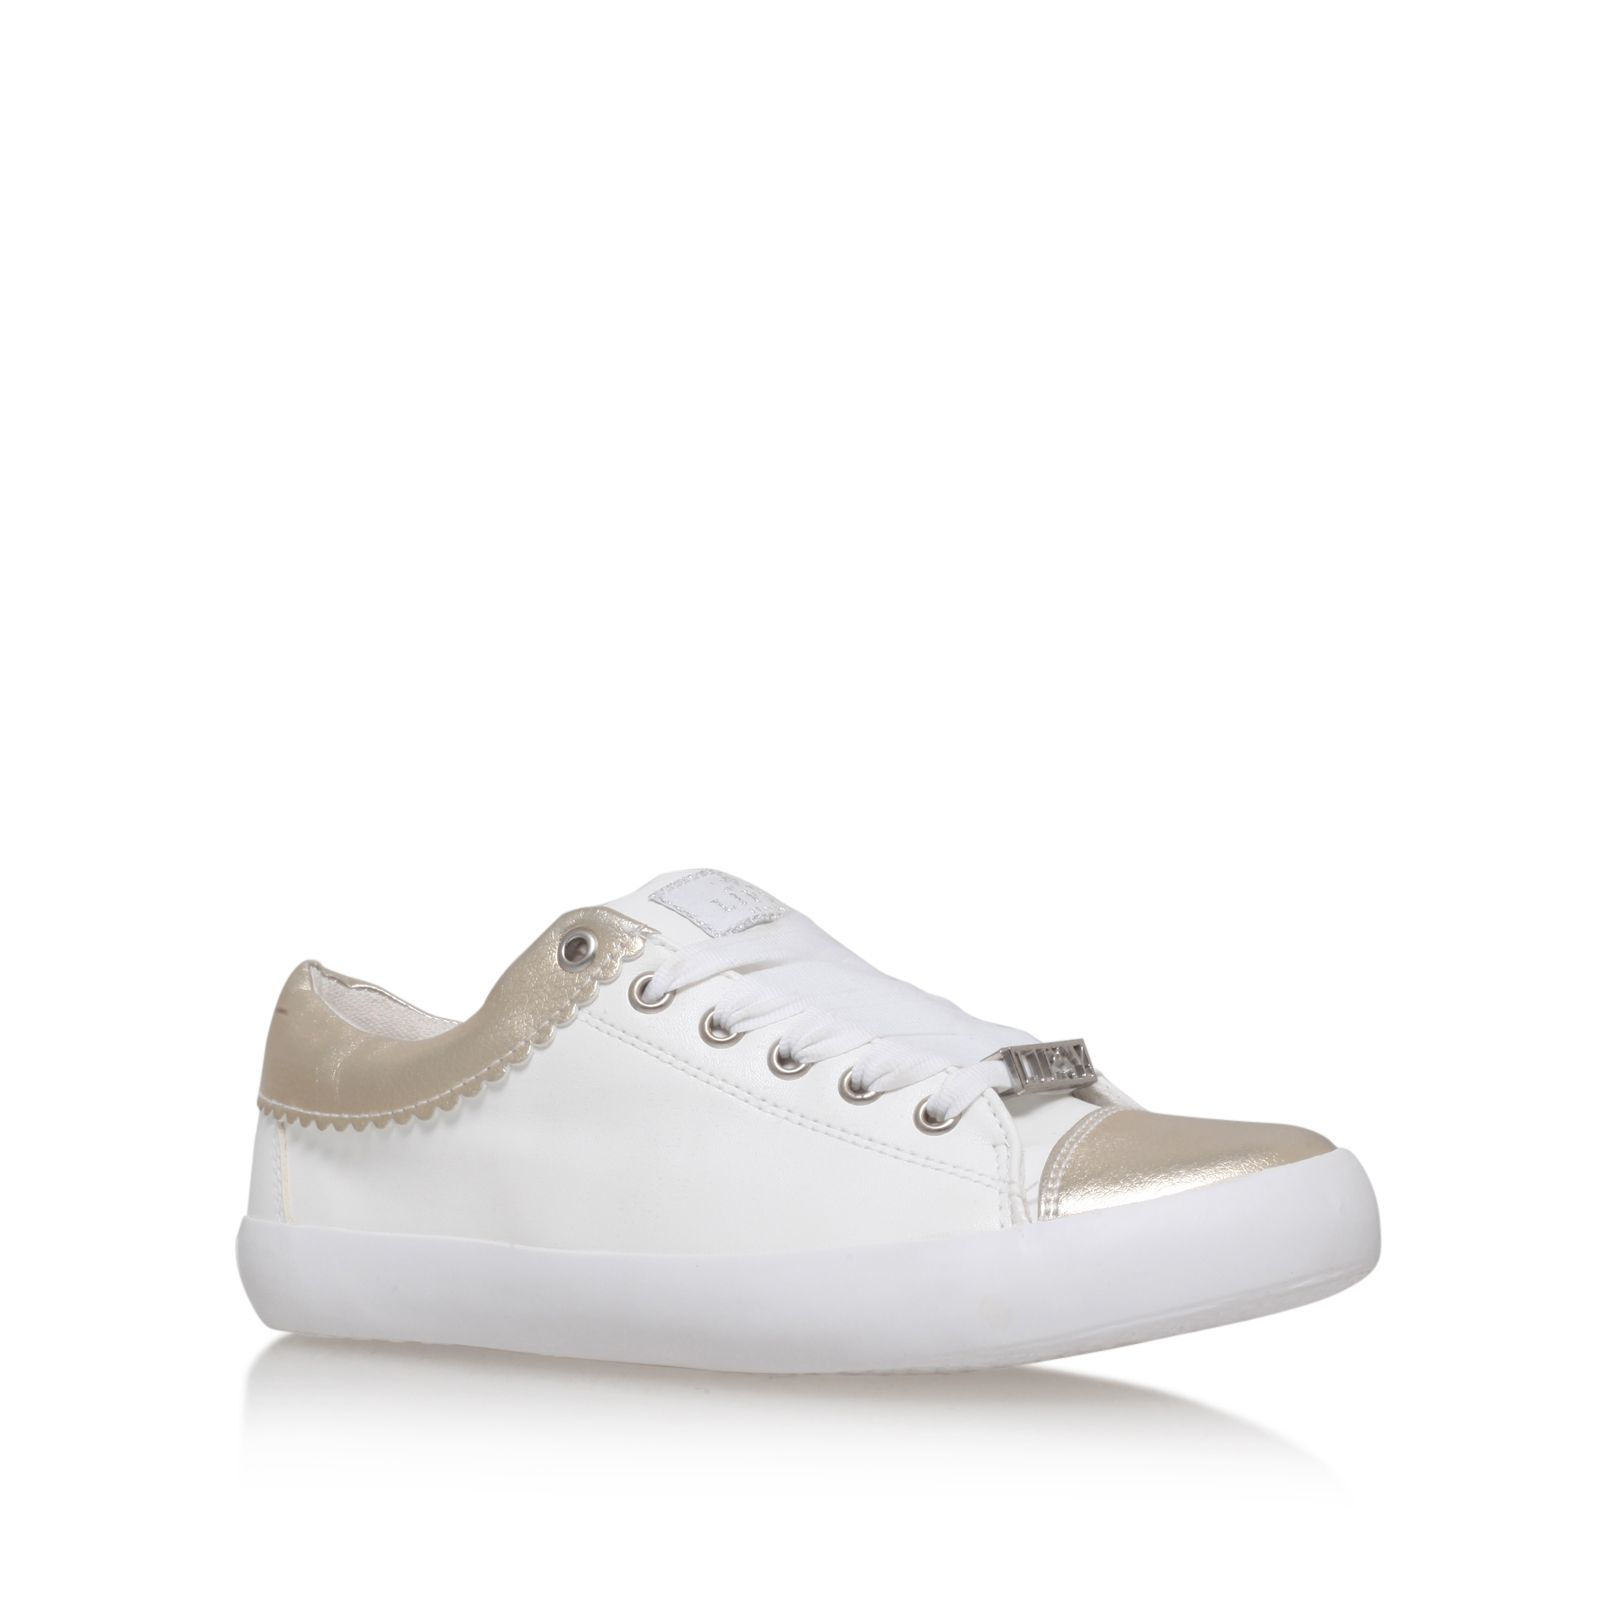 Lipsy Alissa Flat Lace Up Sneakers In White Lyst